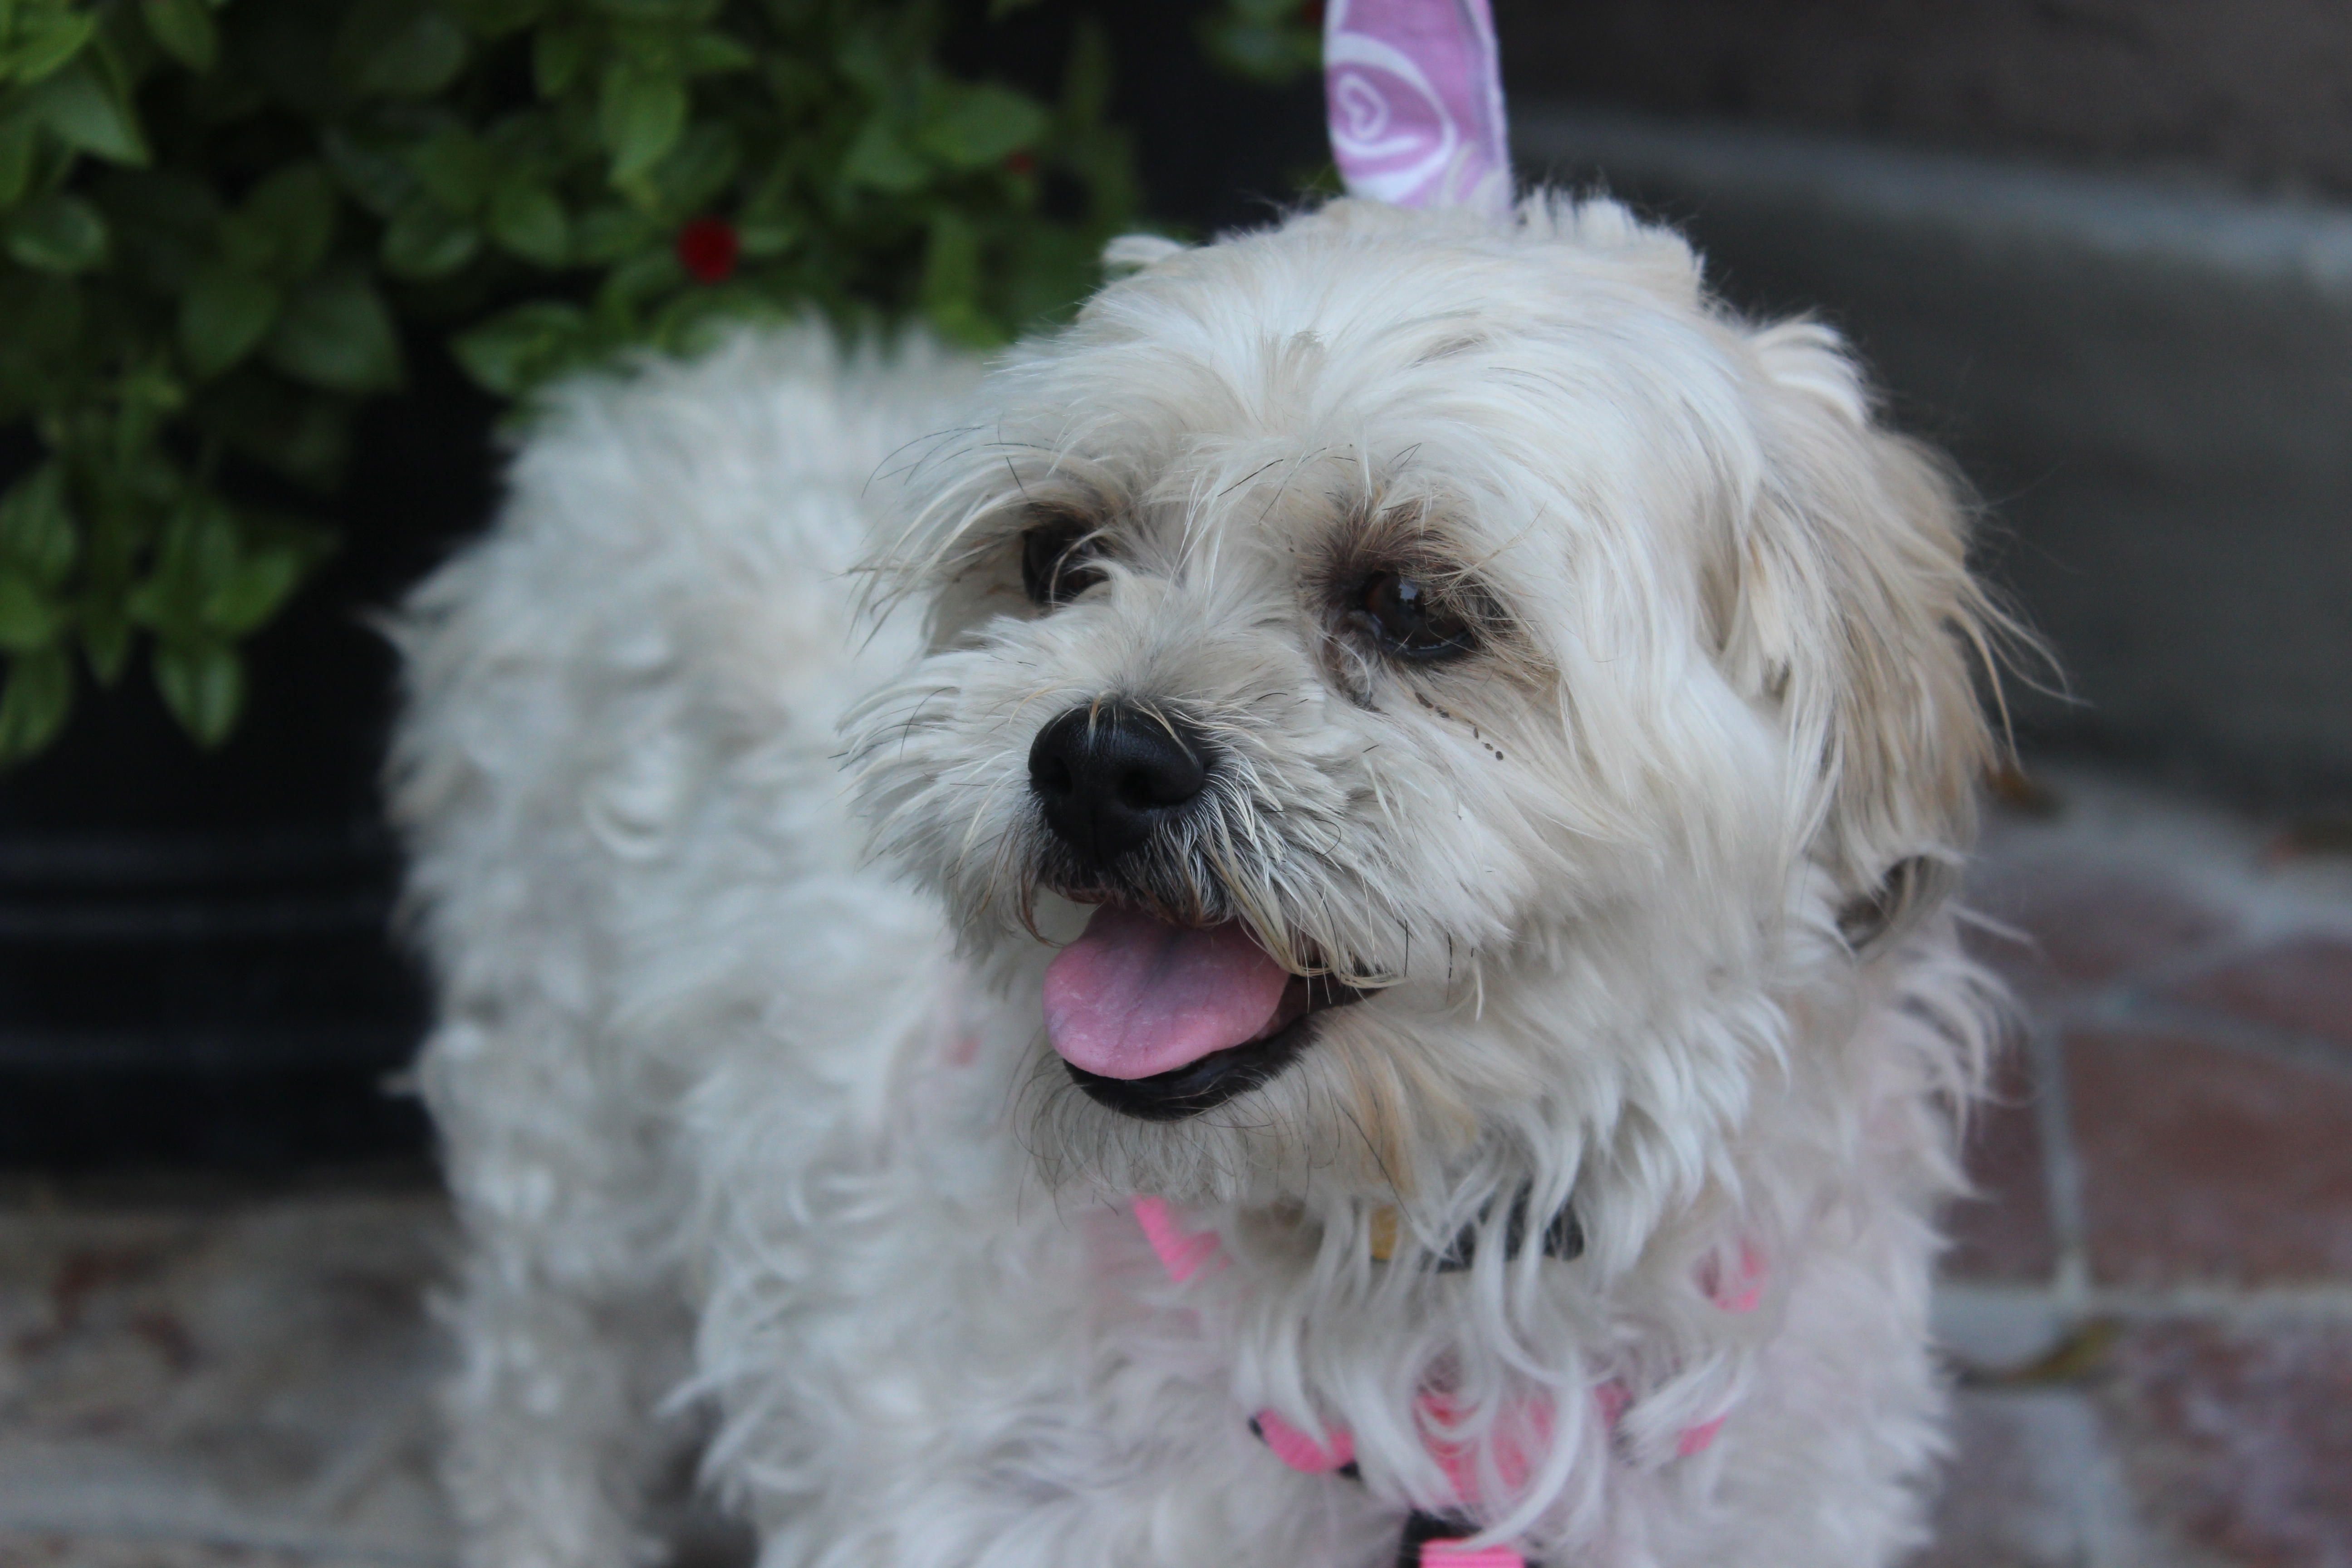 Peanut & Butter – Lhasa Apso/Poodle Mix – Adopted 7/15/13 ...